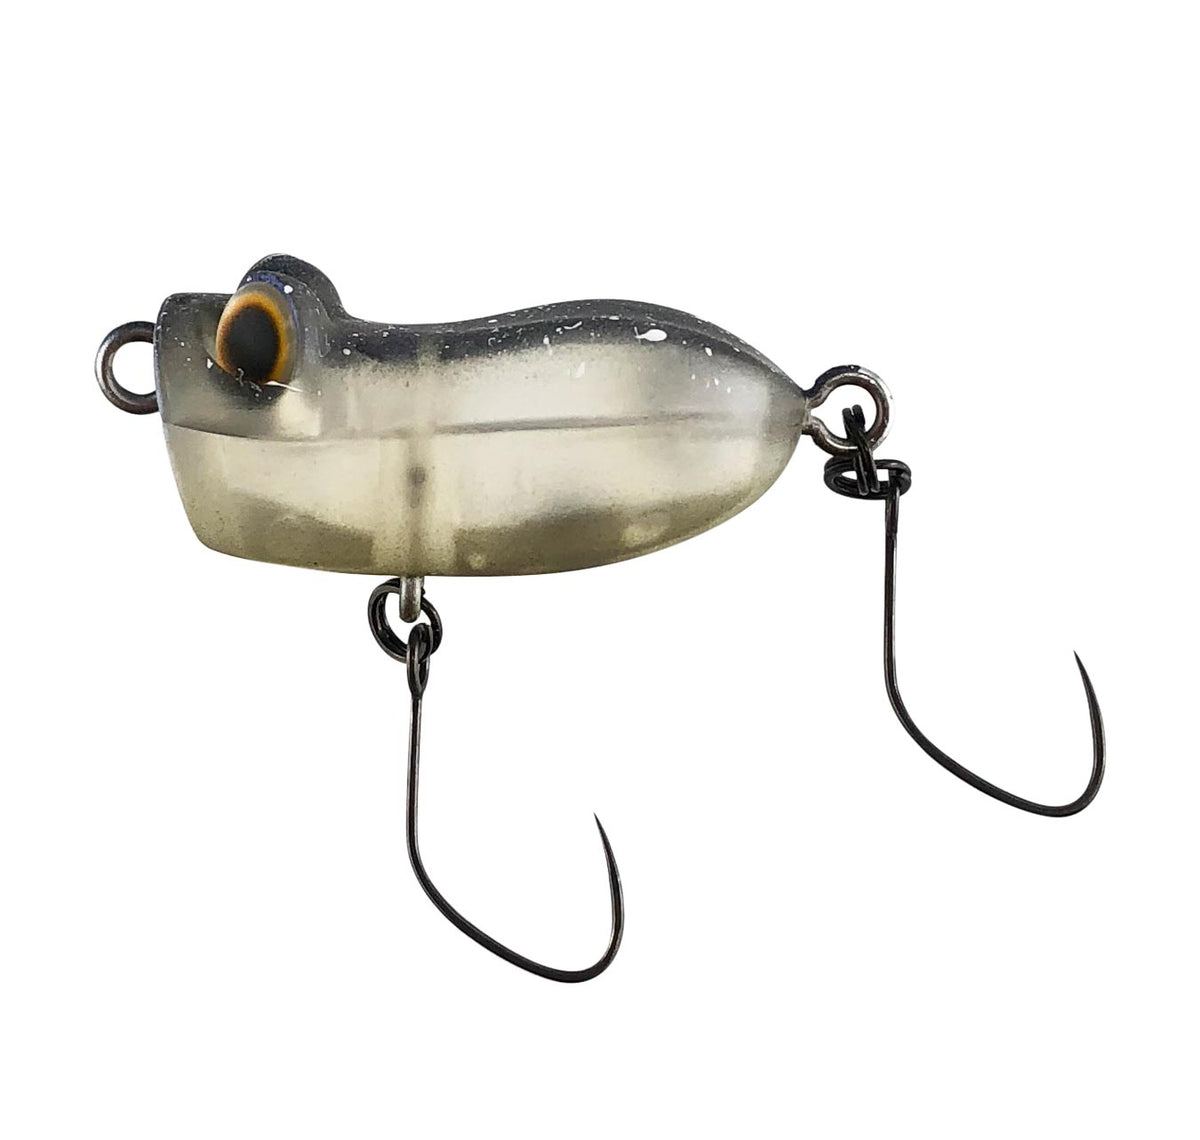 Jackson Cyarl Float Lures